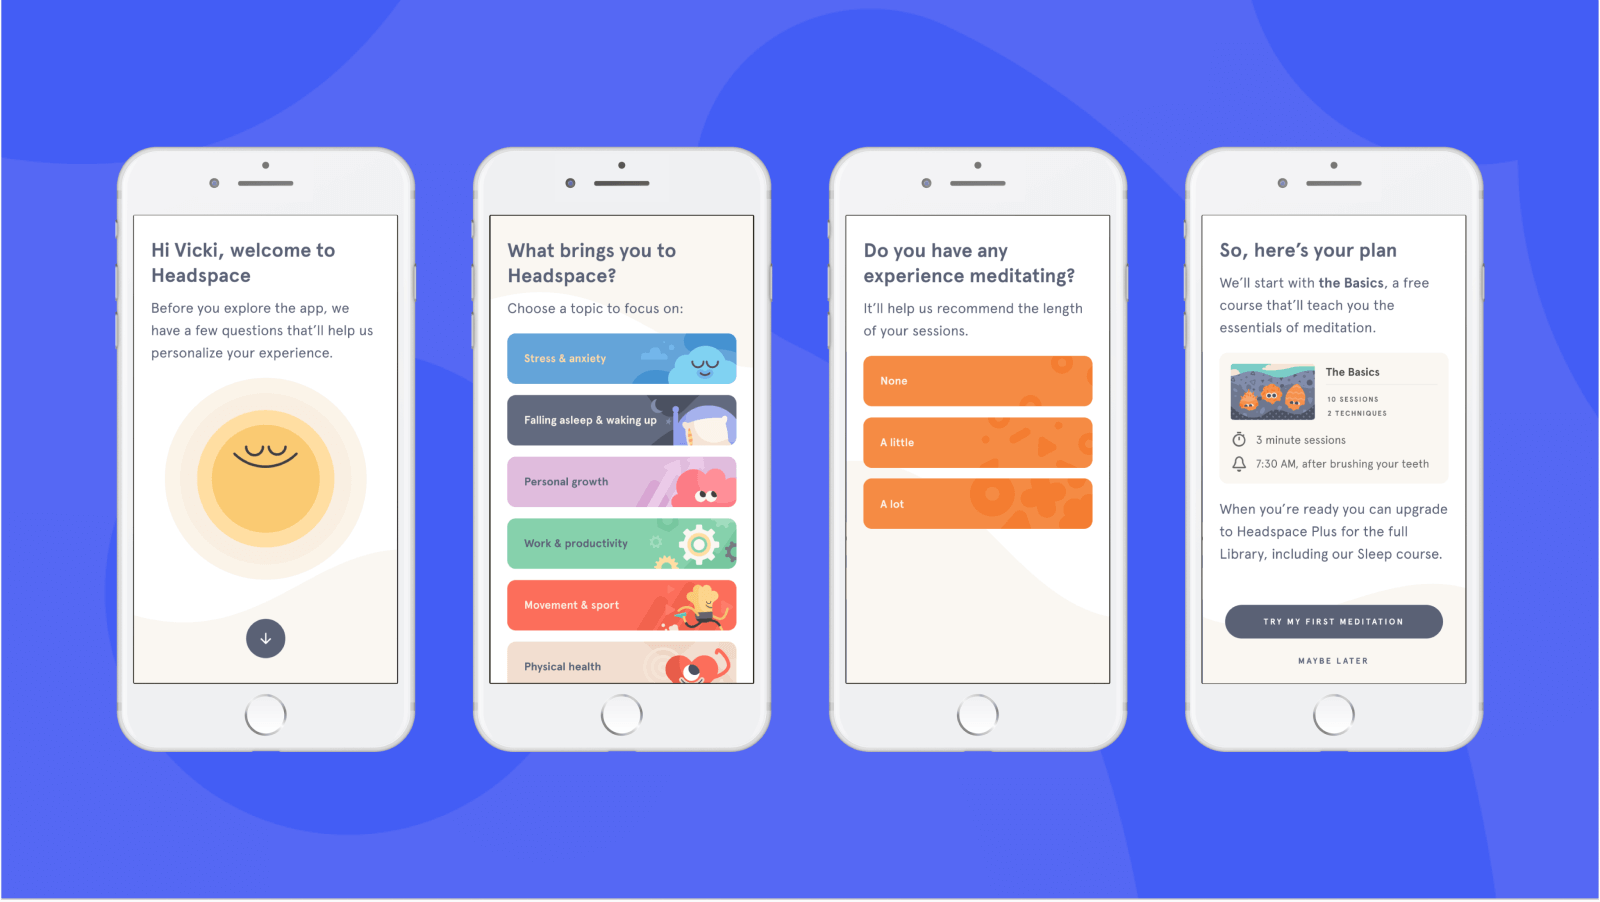 Headspace New User Onboarding